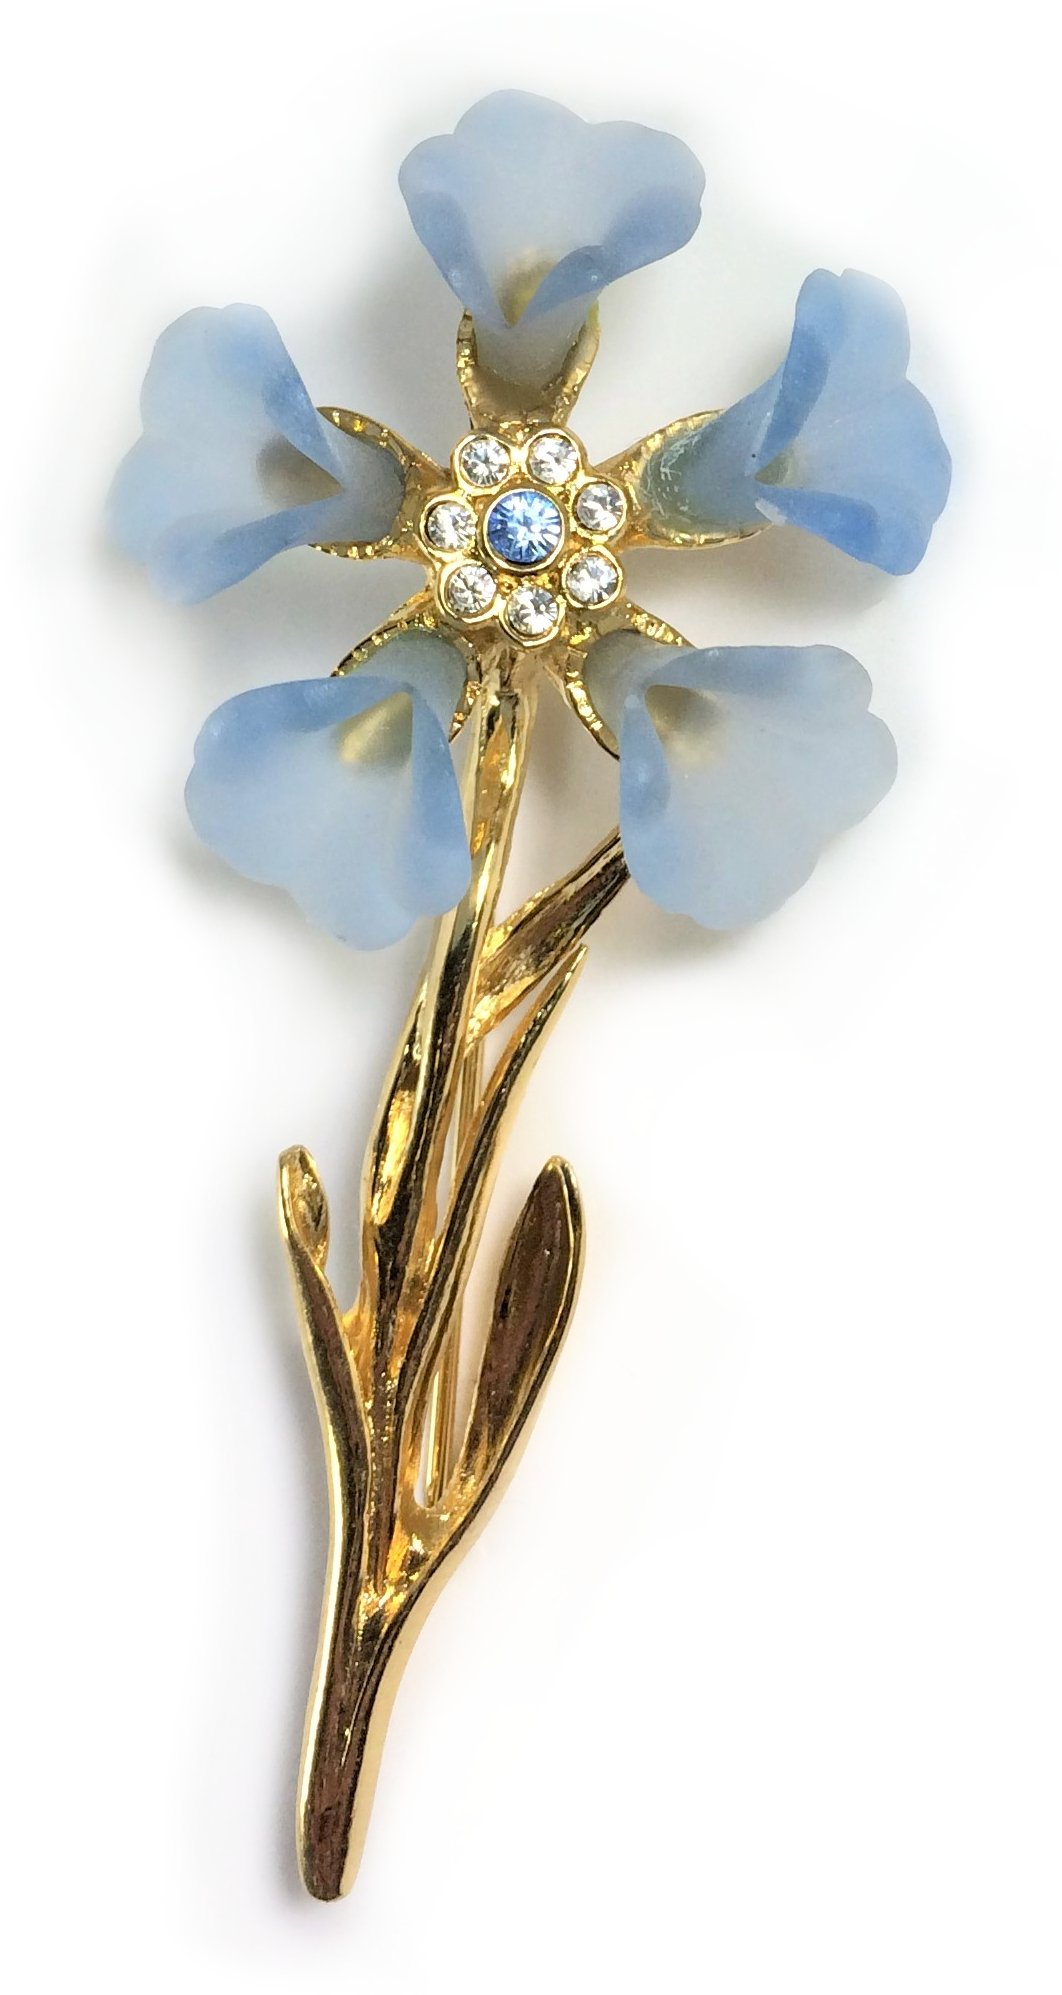 24K Gold Plated Blue Cornflower Faberge Style Brooch Pin - Gift Boxed